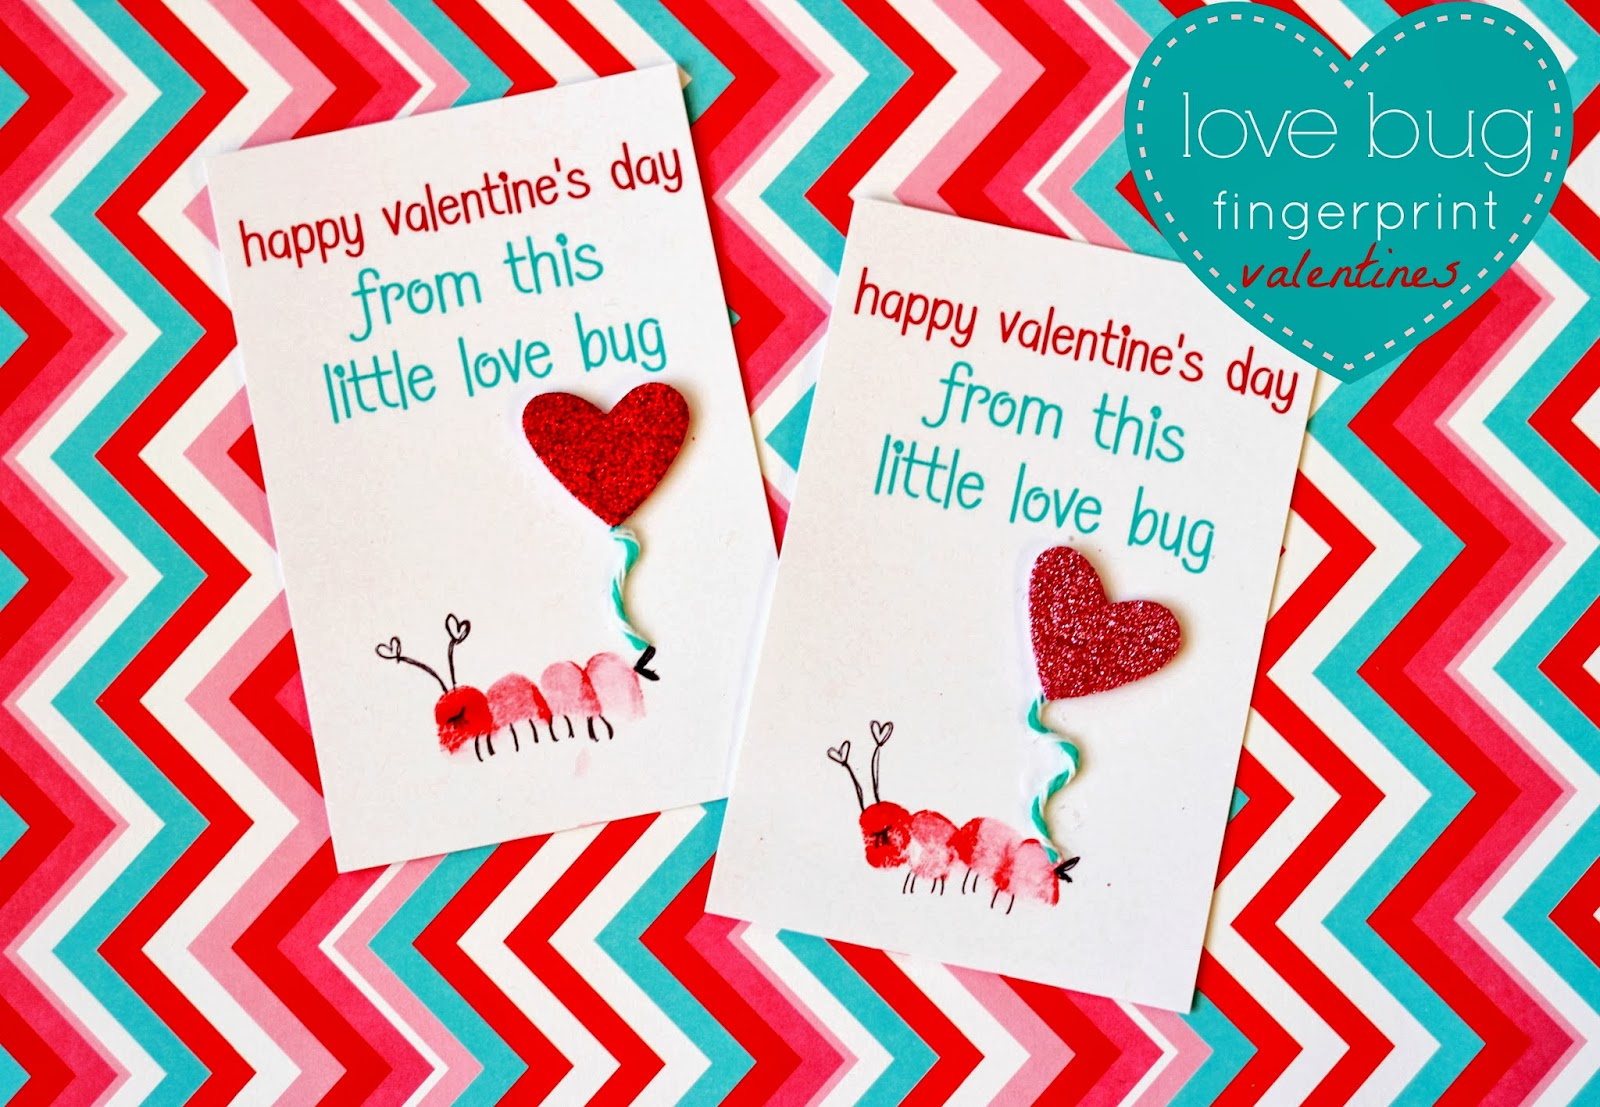 fingerprint_valentines